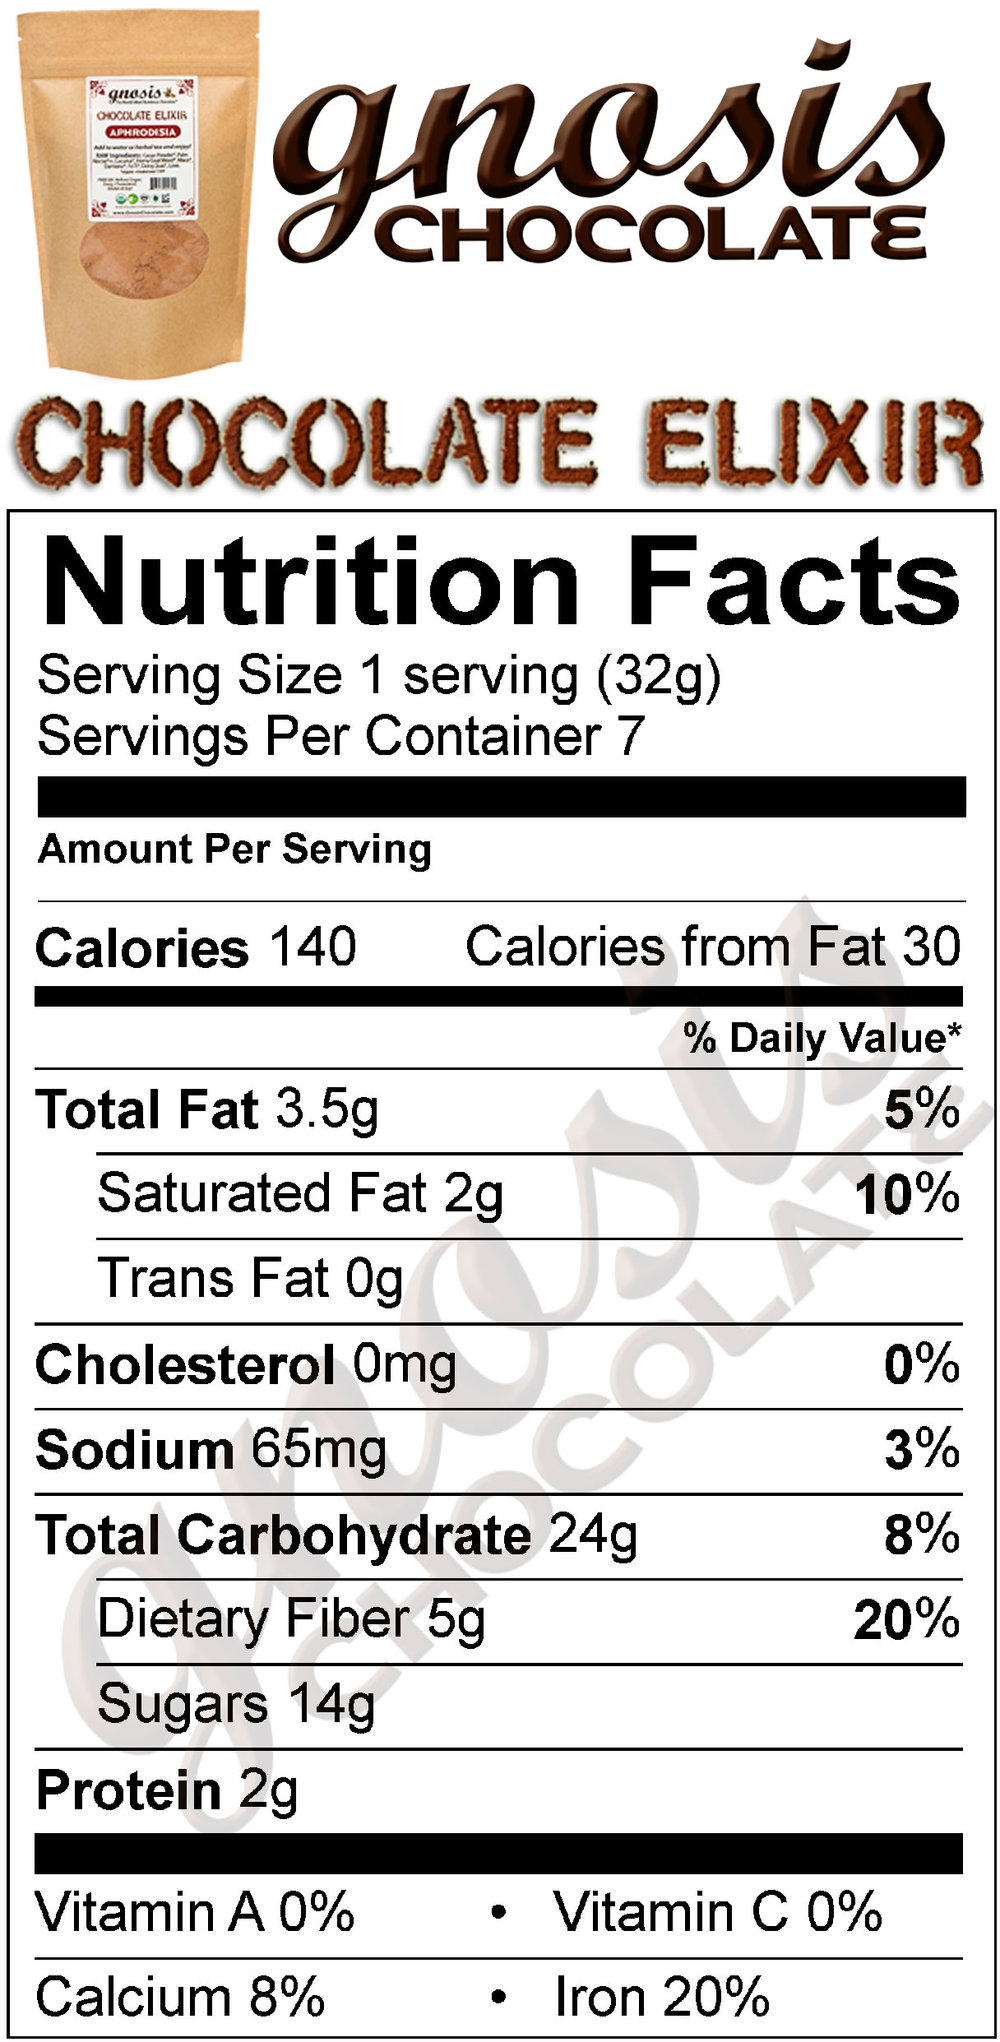 Elixir-Nutrition-Facts.jpg